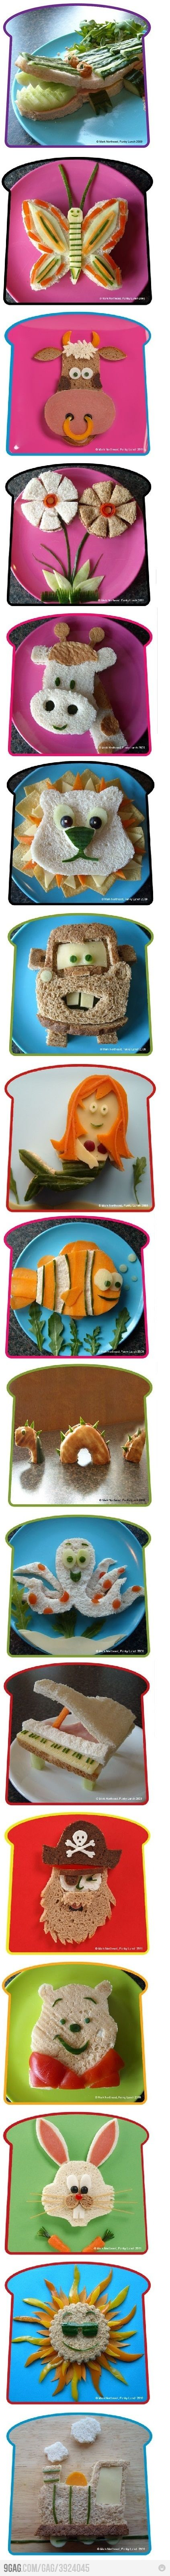 Food for kids: Fun Lunches, Fun Food, Kids Lunches, Kids Sandwiches, For Kids, Lunches Ideas, Sandwiches Ideas, Food Art, Kids Food